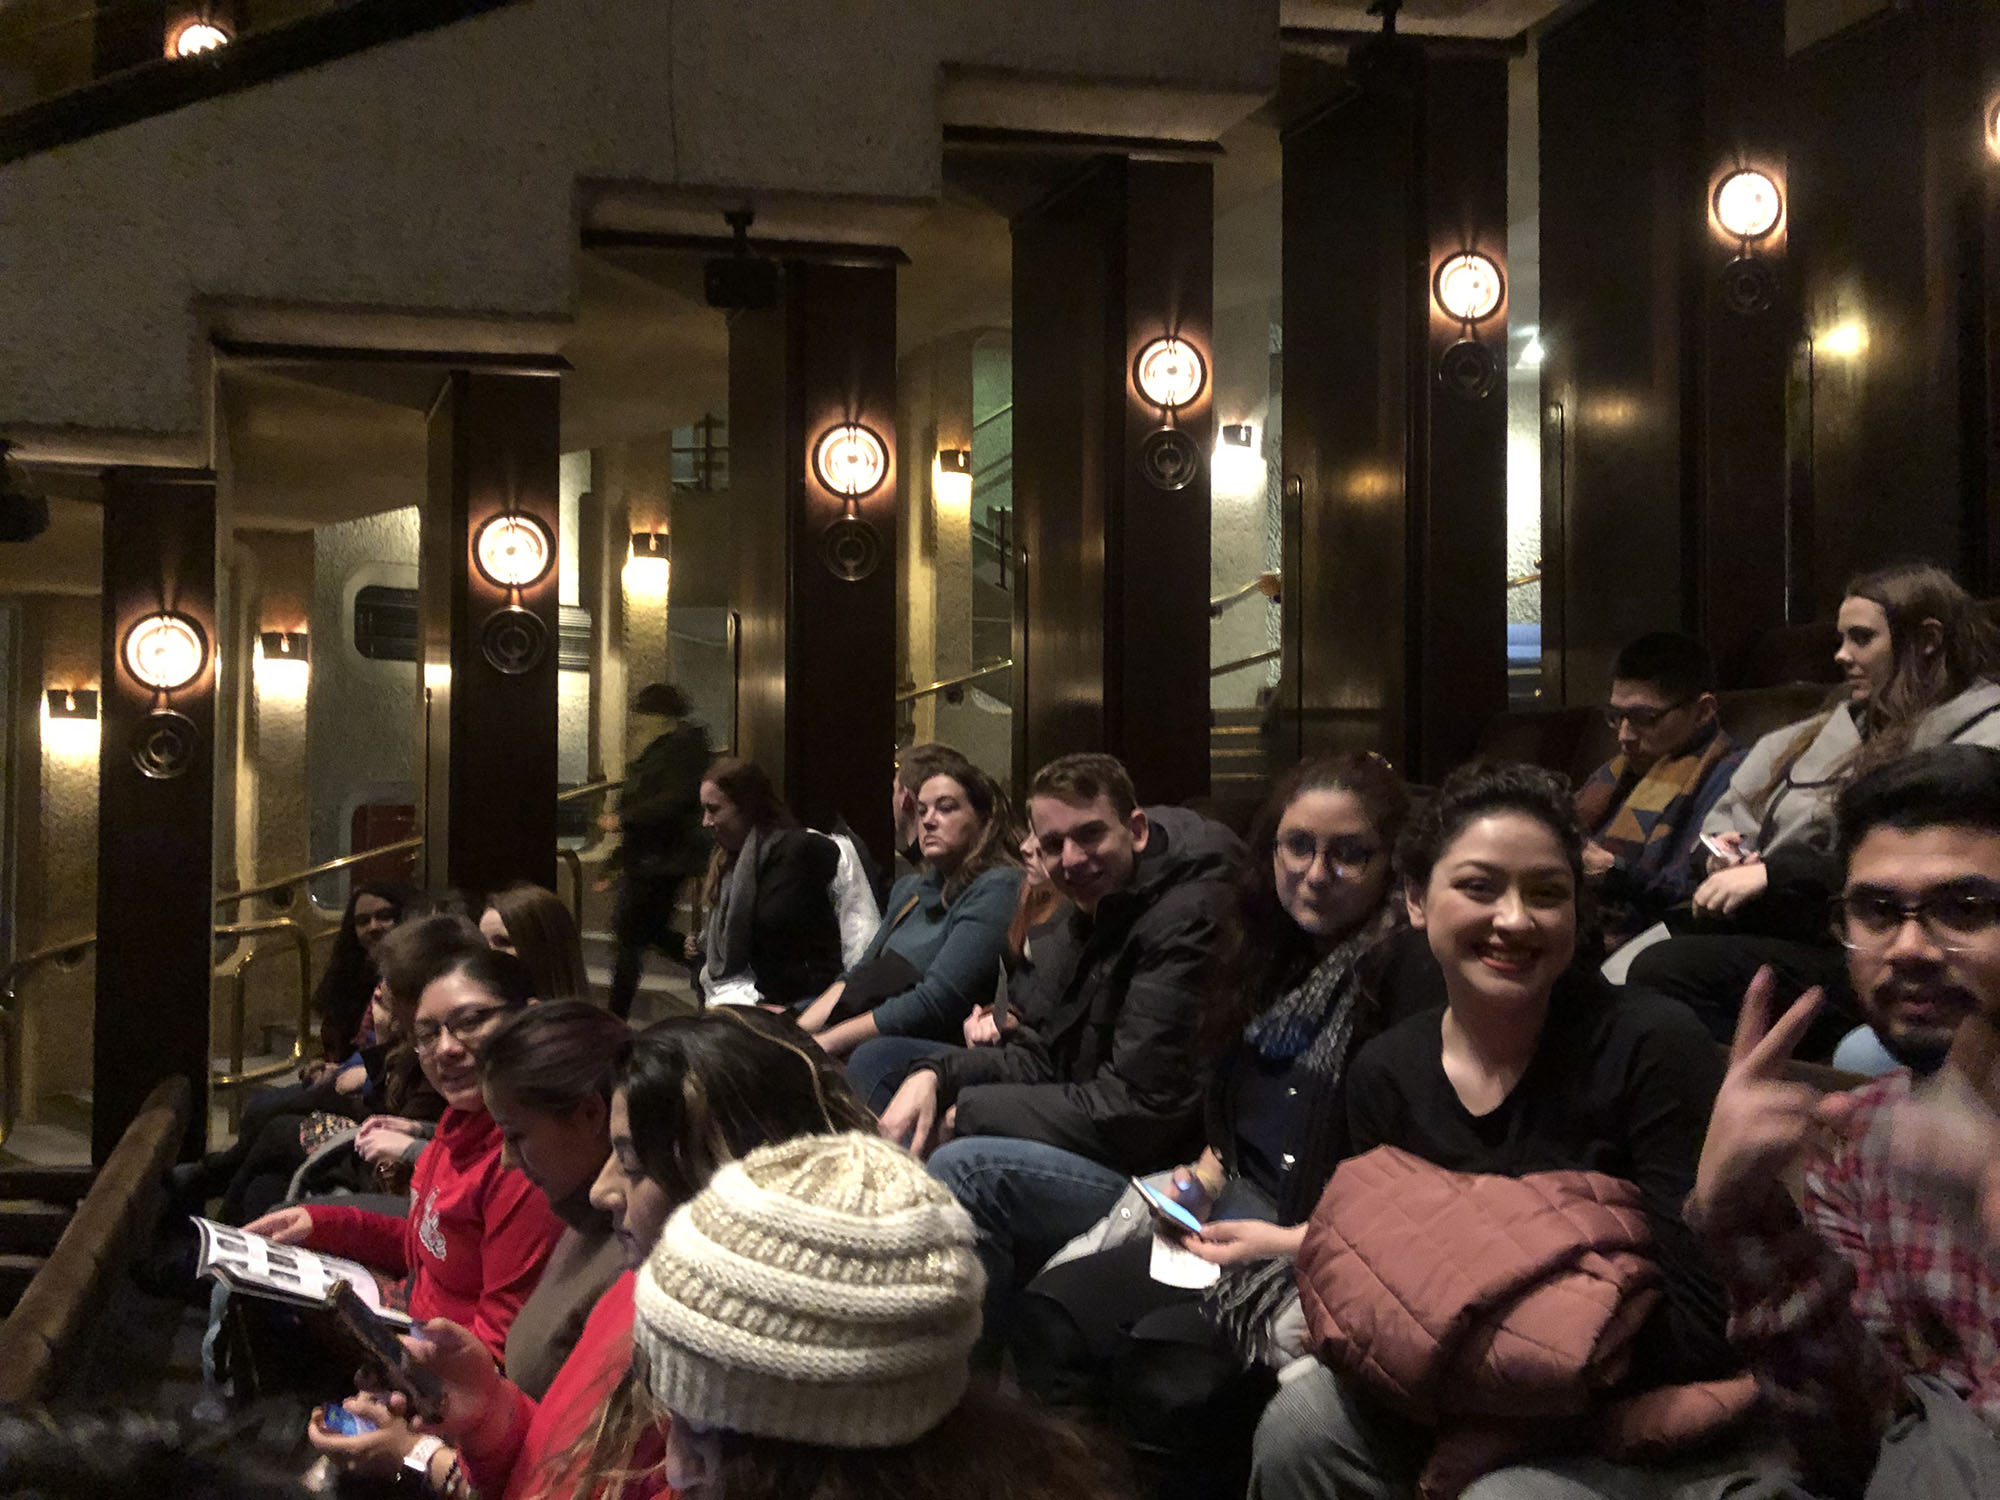 Students excitedly await the beginning of Macbeth at the Barbican Theatre.